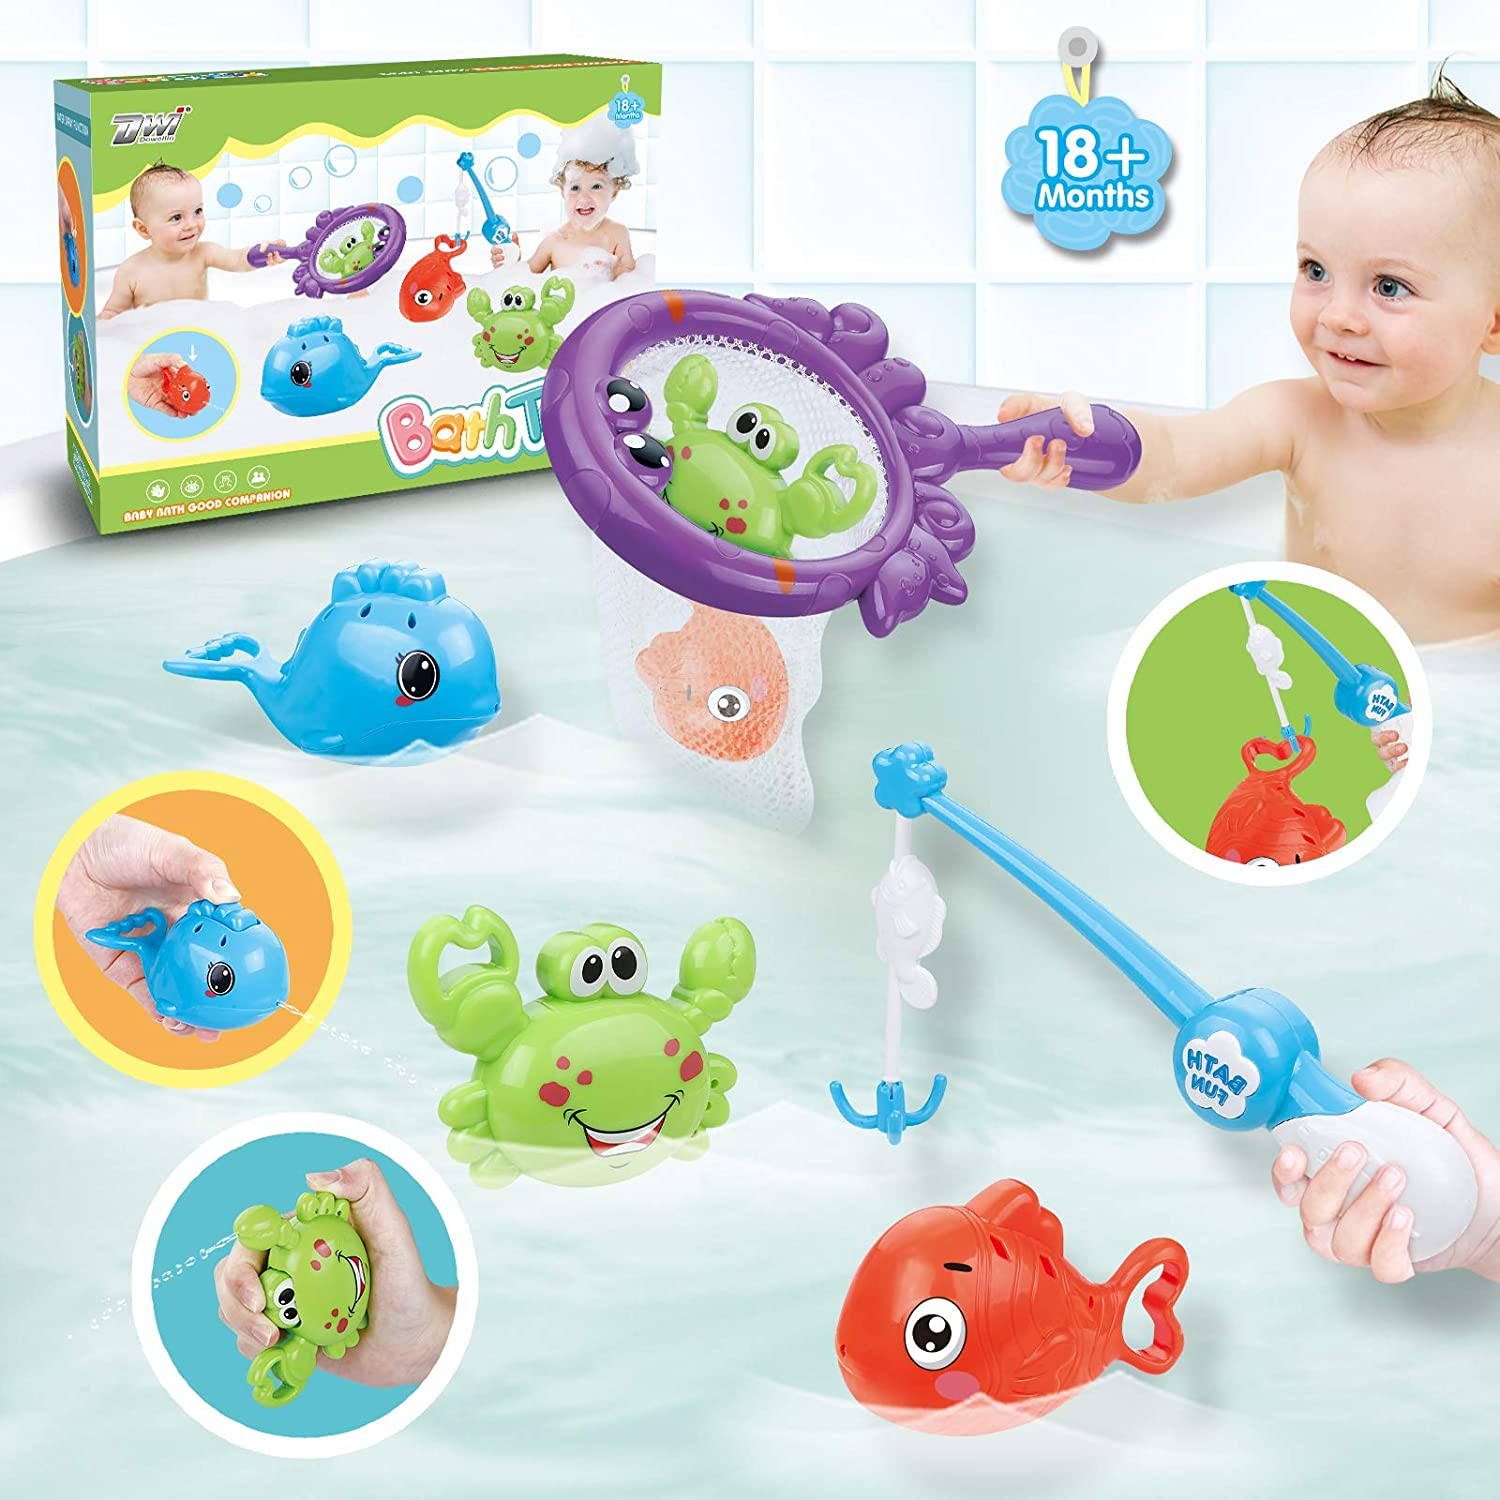 Dwi Dowellin Bath Toys Fishing Games with Fish Net BPA Free No Mold Squirt Fishes Crab Water Table Pool Bath Time Bathtub Toy for Toddlers Baby Kids Infant Girls Boys Age 1 2 3 4 5 6 Years Old